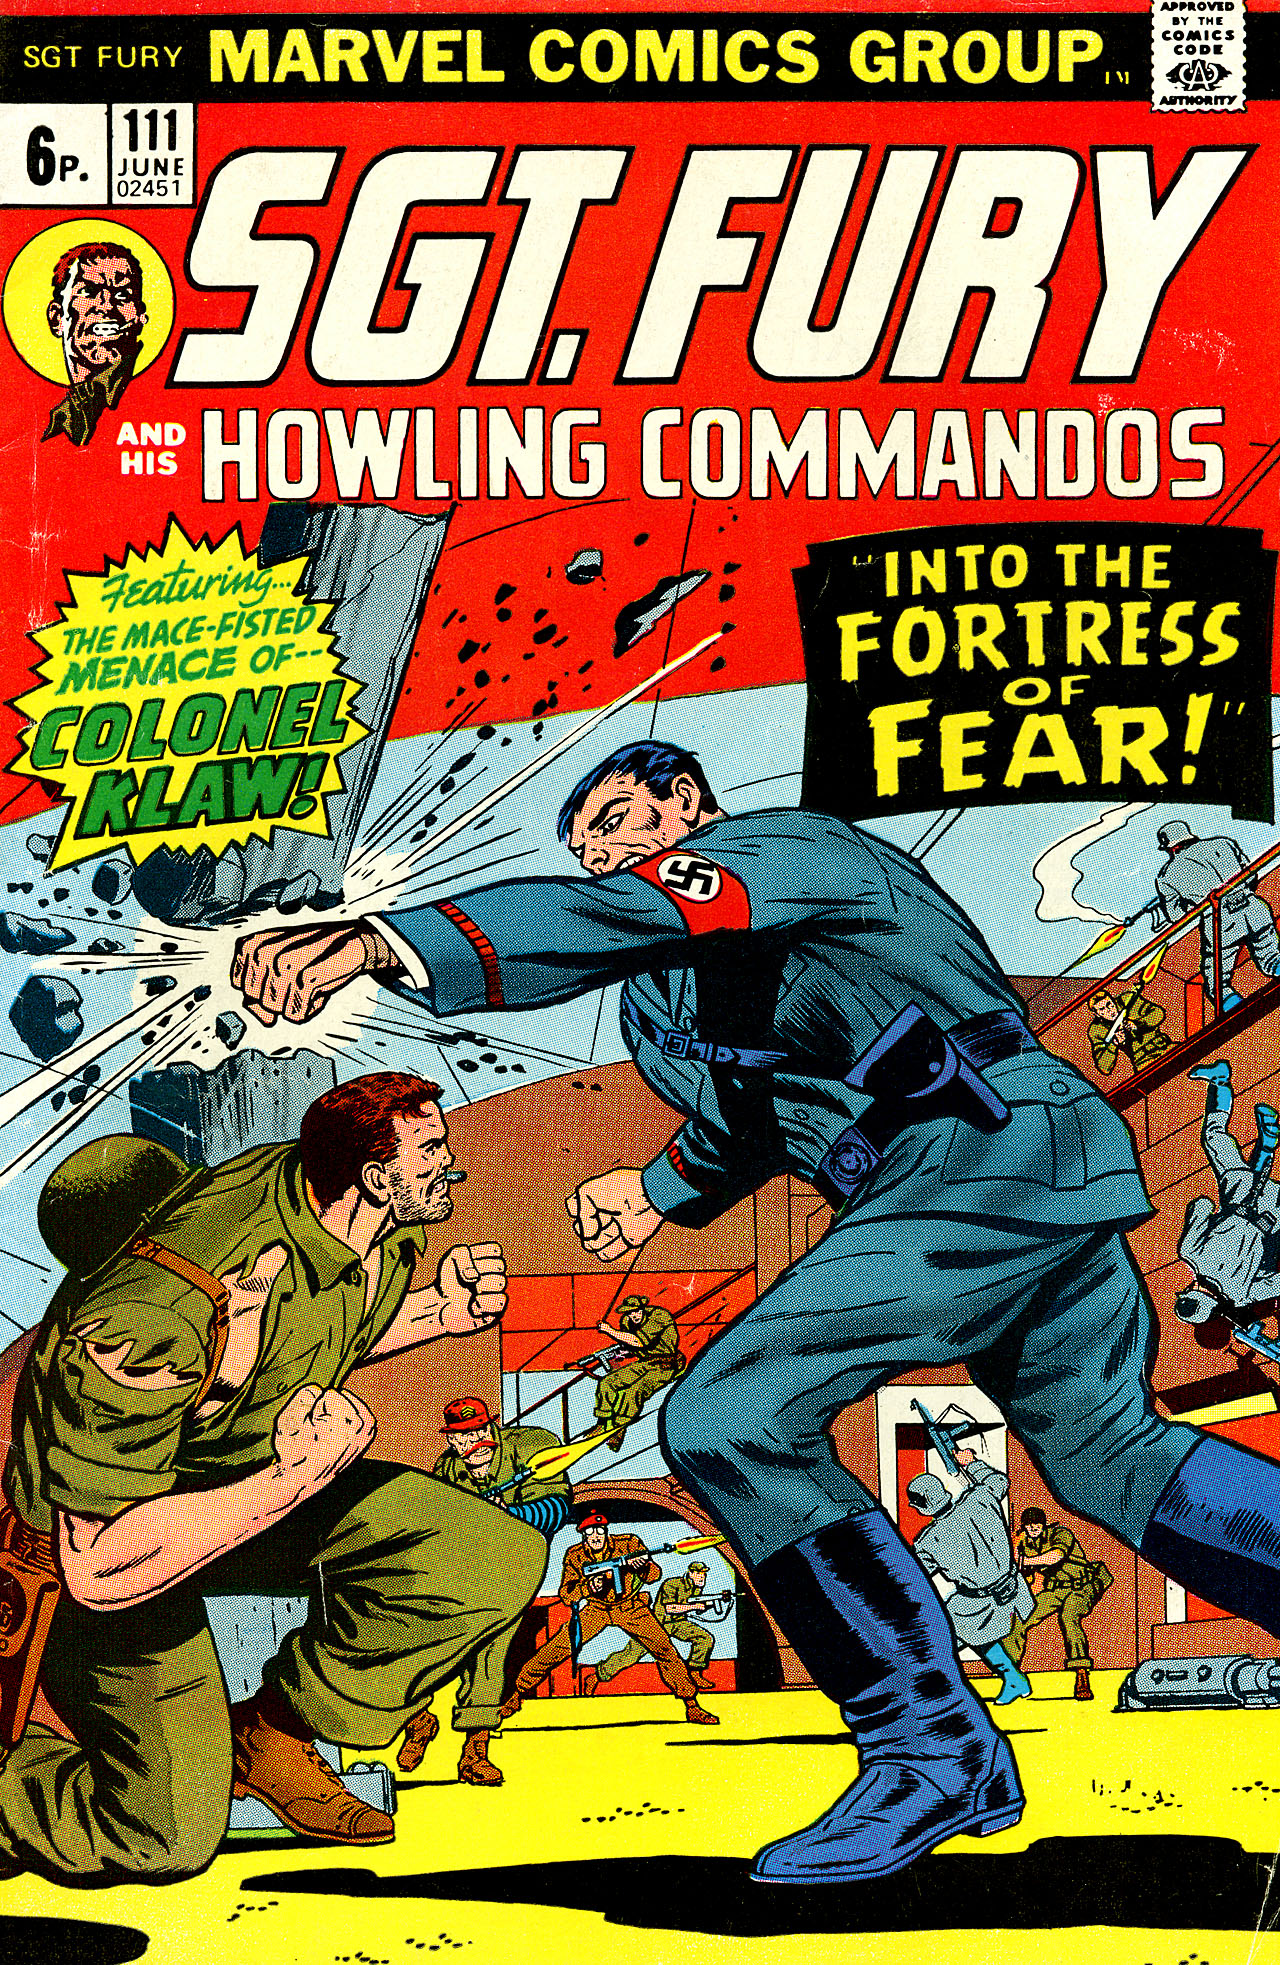 Read online Sgt. Fury comic -  Issue #111 - 1